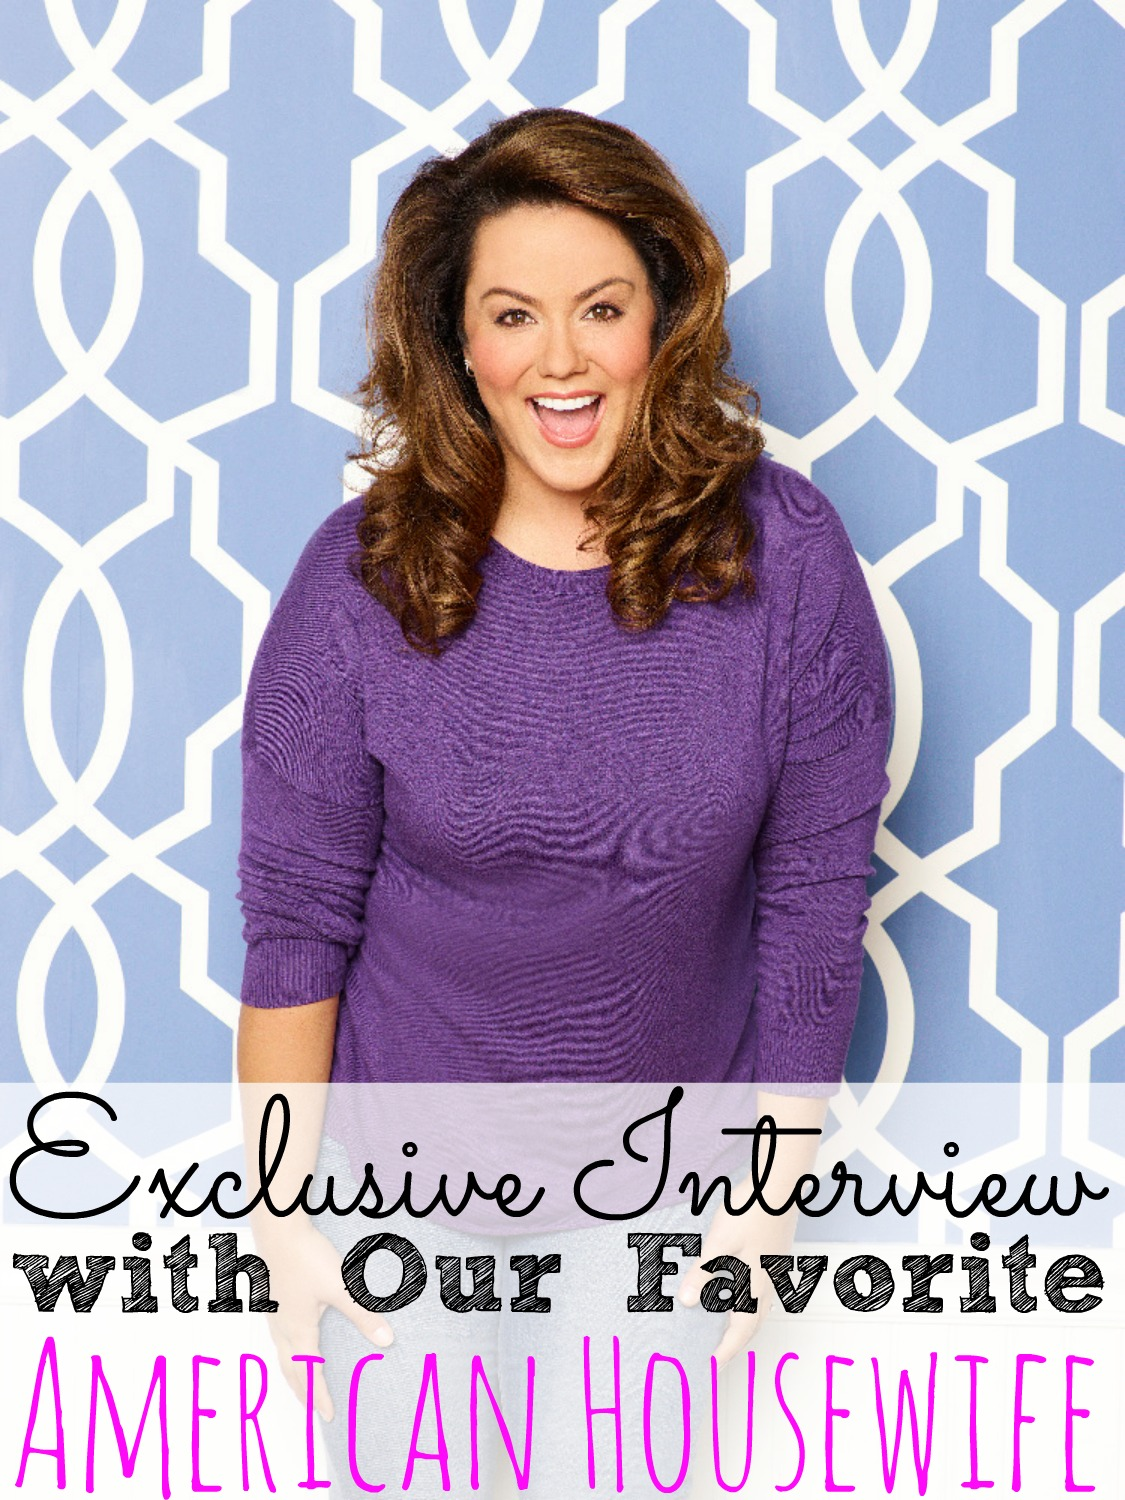 Exclusive Interview With Our Favorite American Housewife #AmericanHousewife #ABCTVEvent